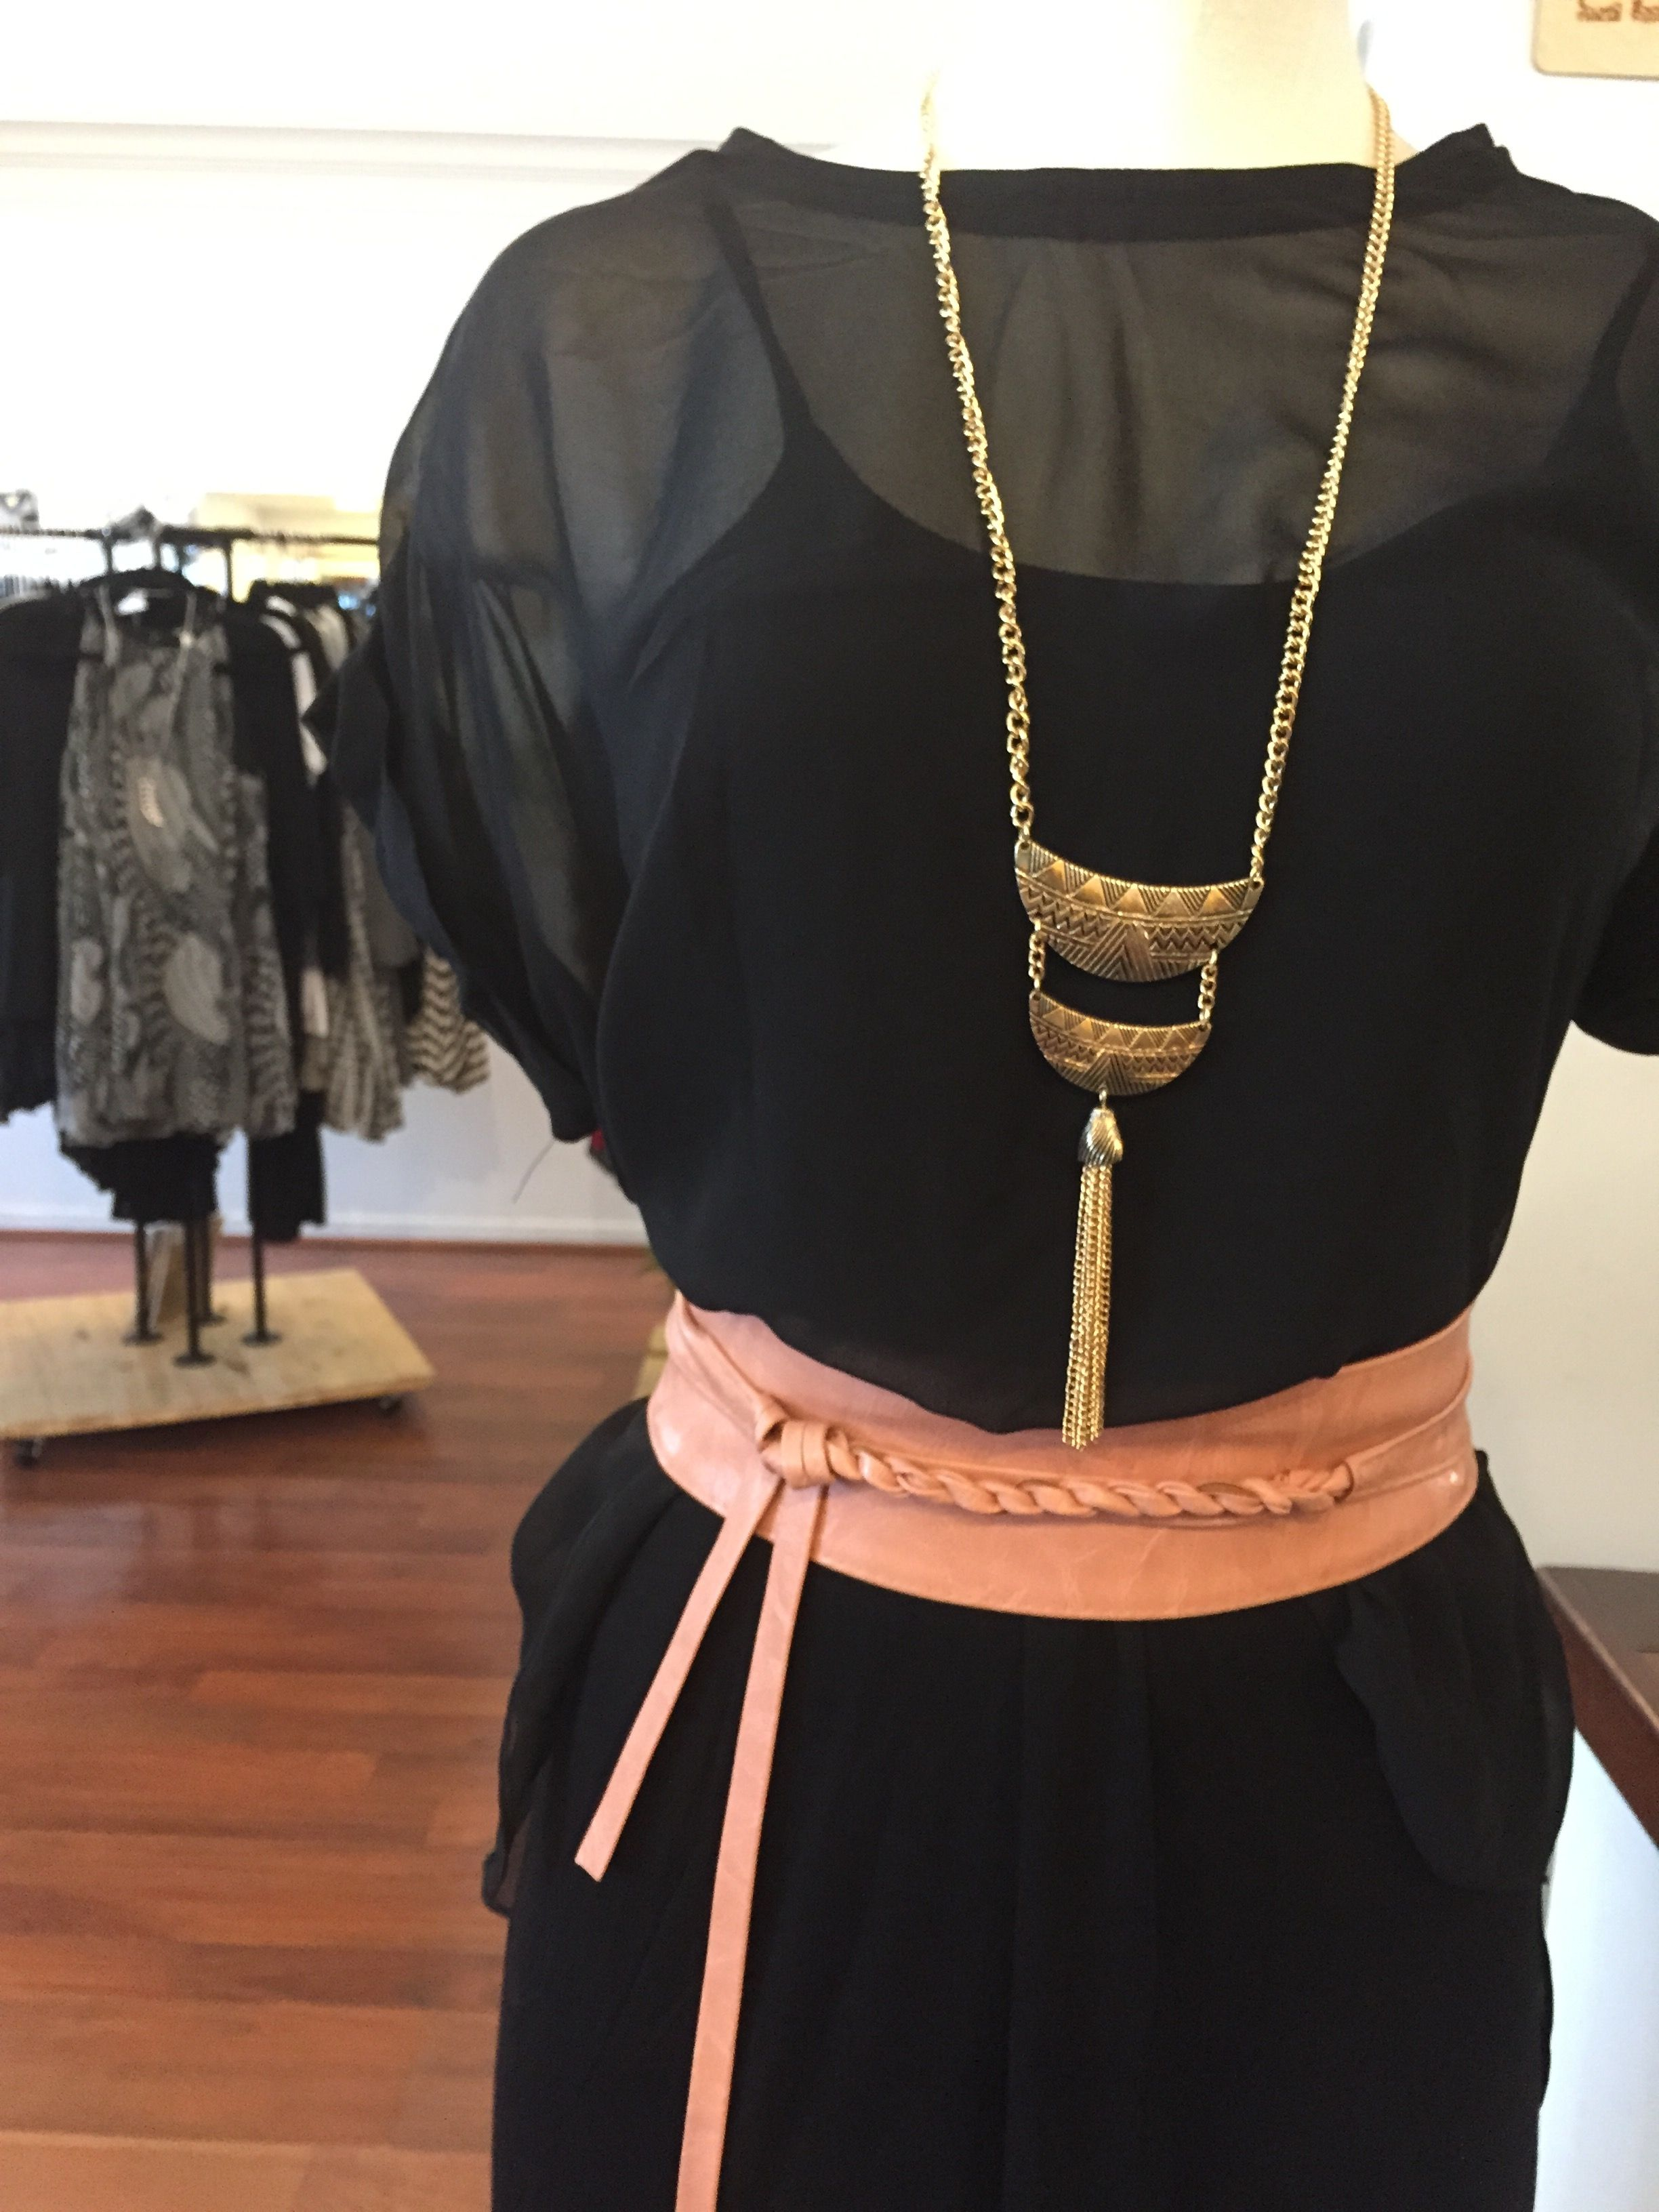 Liane the grecian twist short blush wrap the obi as you would